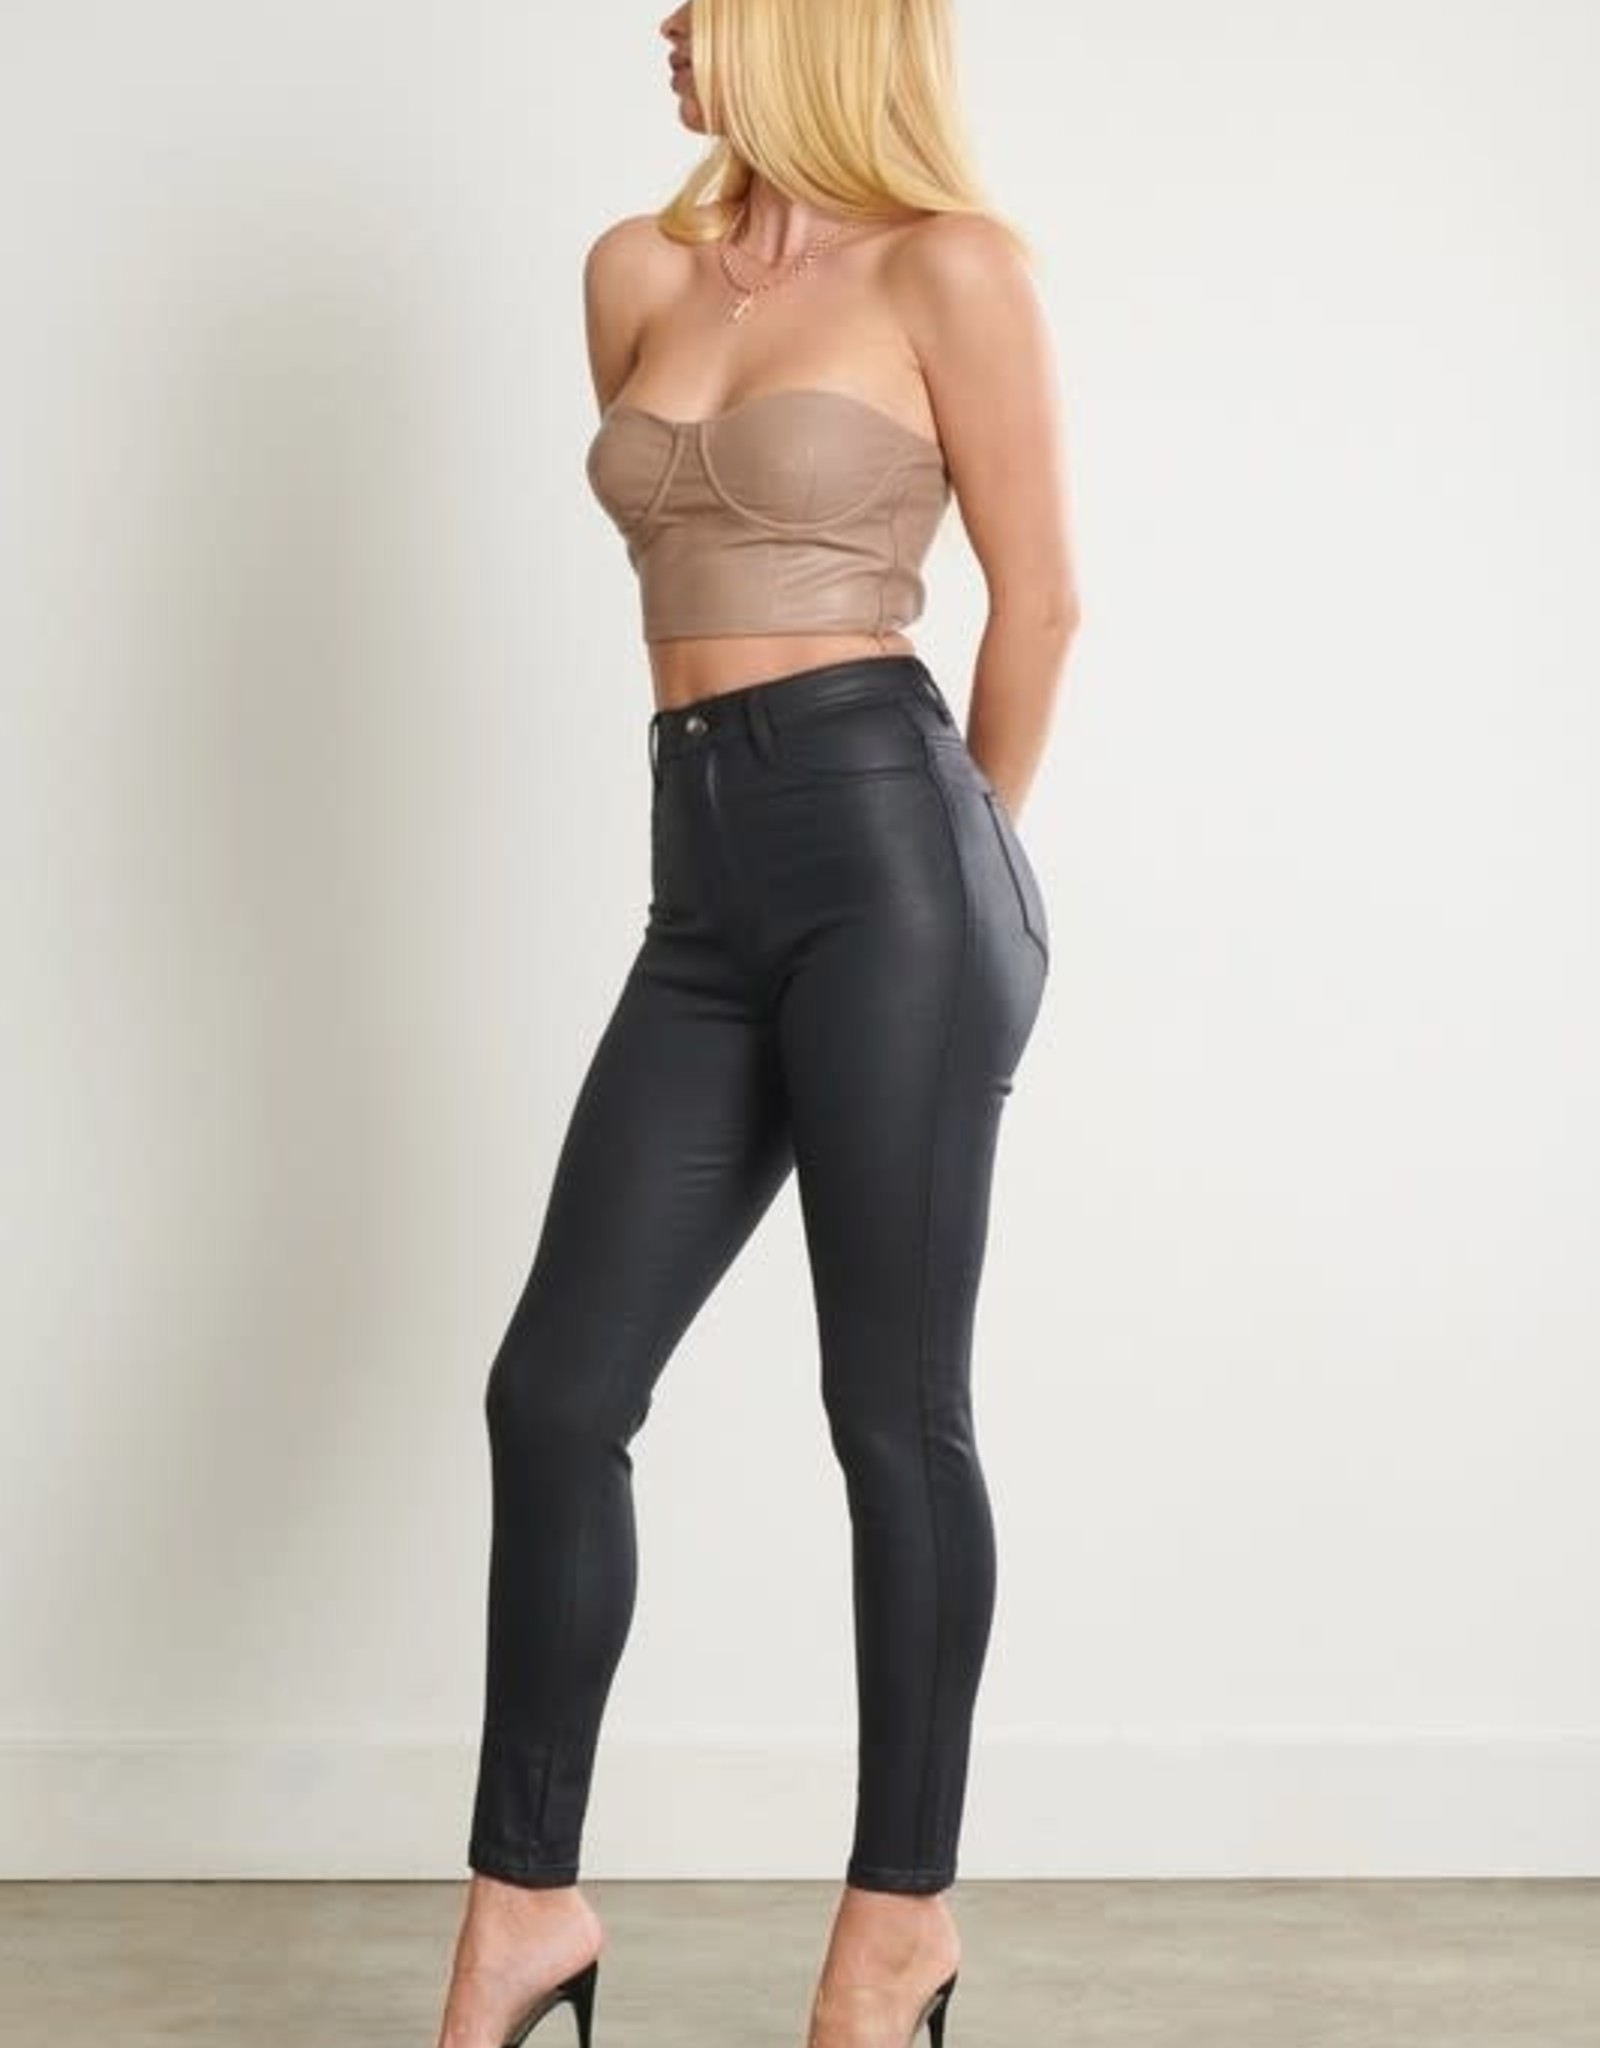 Hammer Collection Black Faux Leather Skinny Jeans